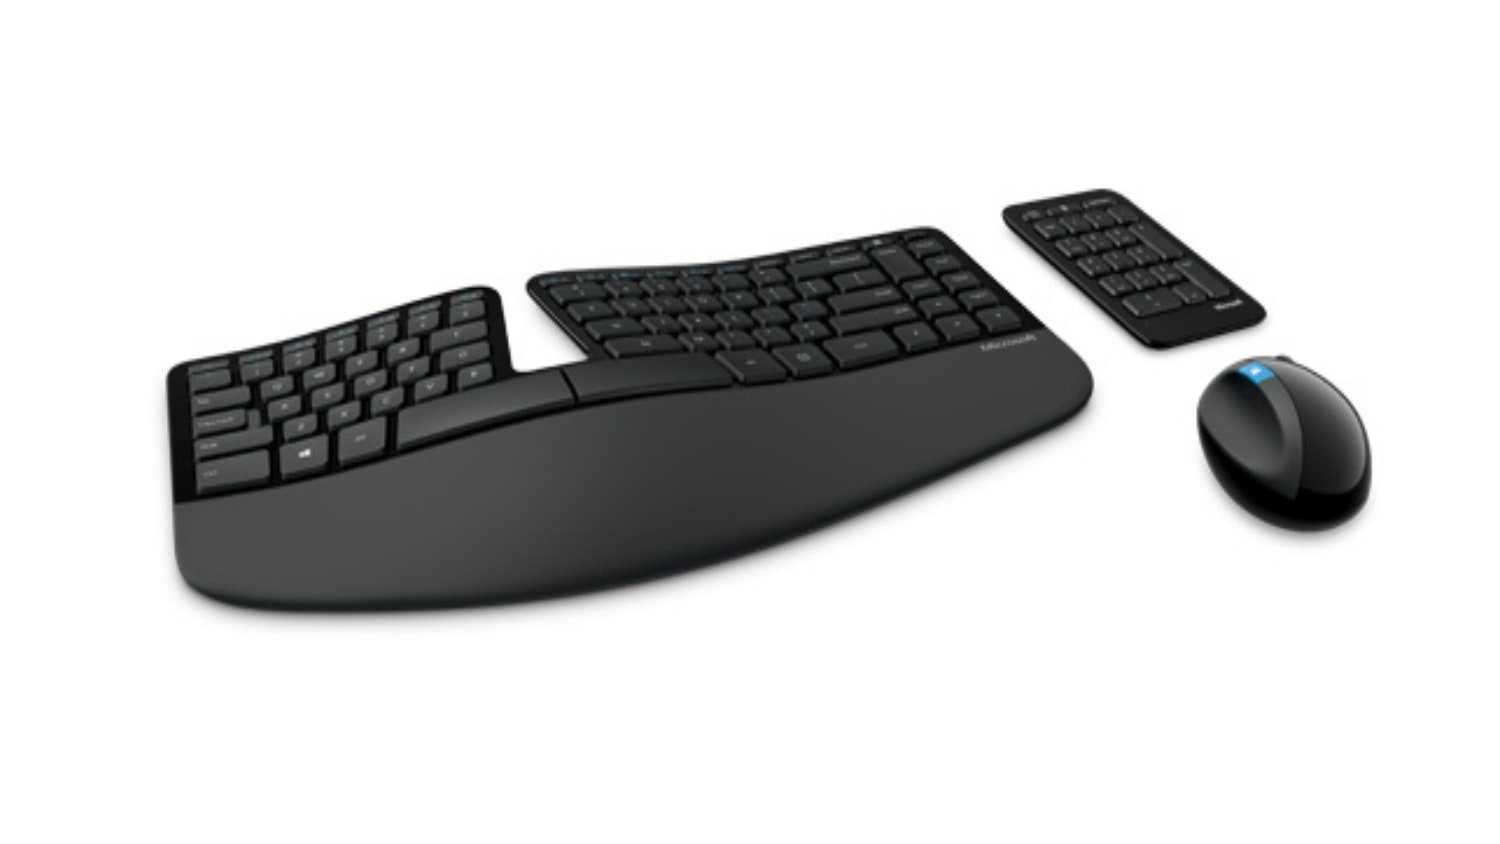 Microsoft Sculpt Ergonomic Desktop Wireless Keyboard And